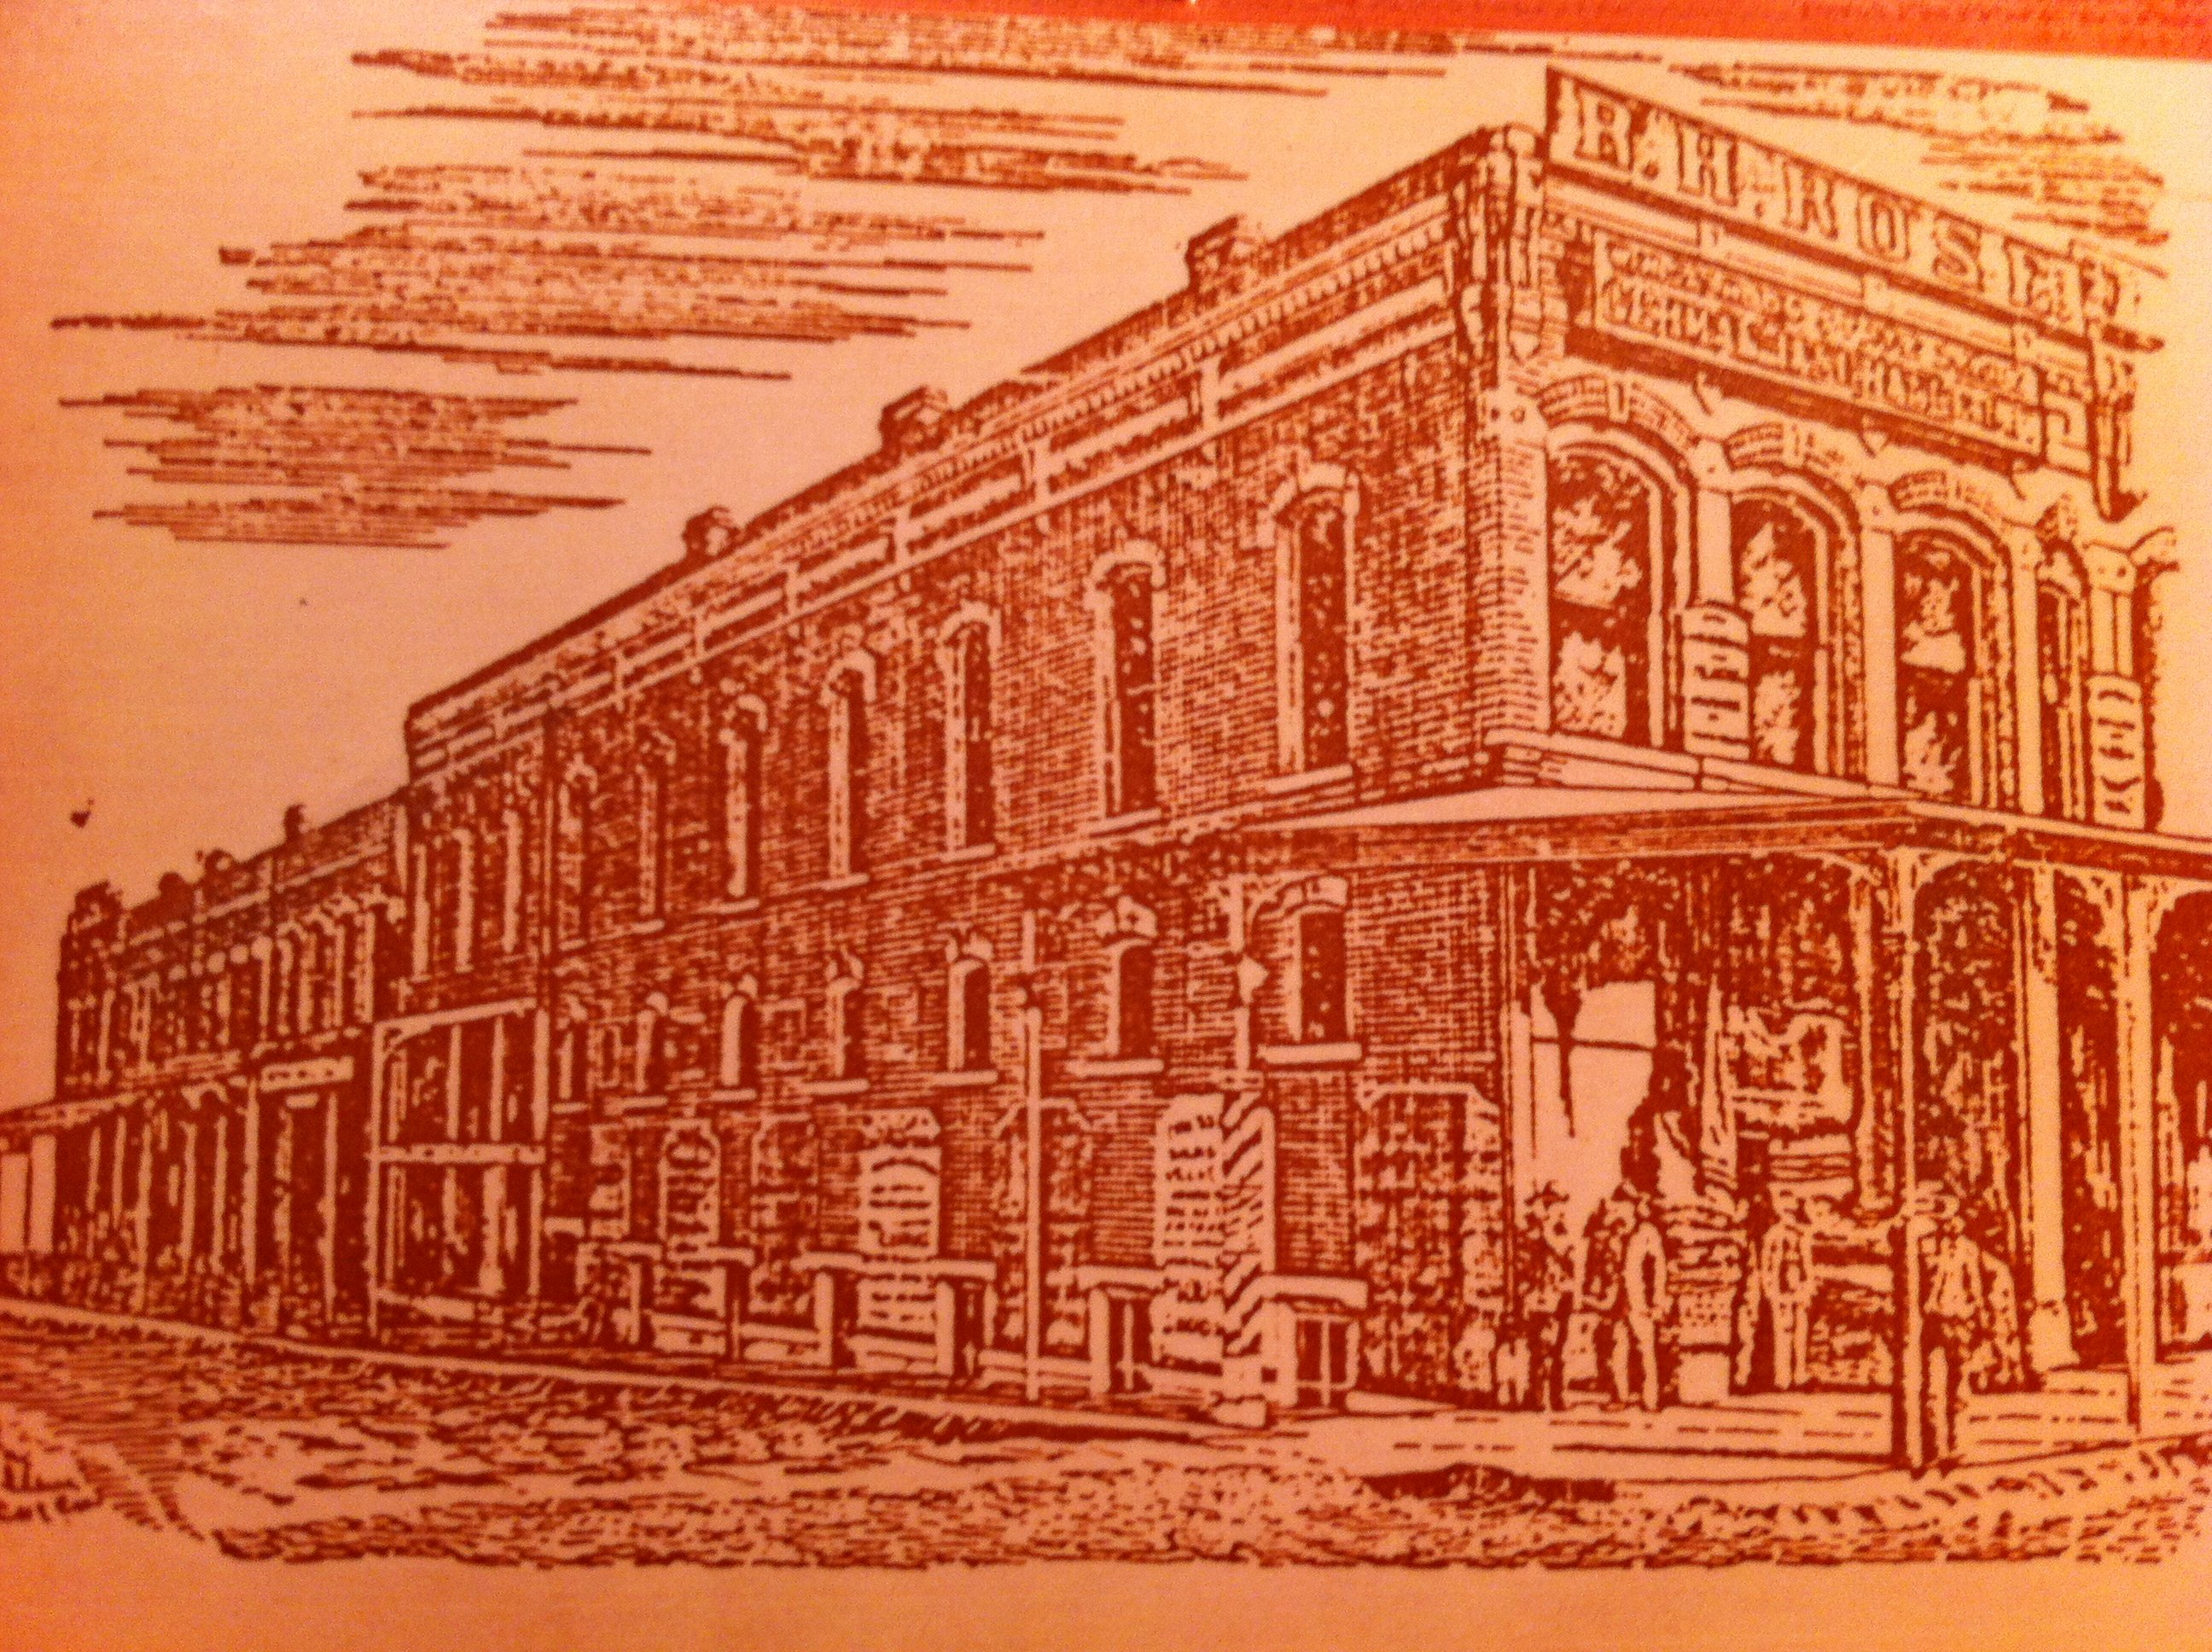 Damon Building as pictured in the 1888 Carthage City Directory.